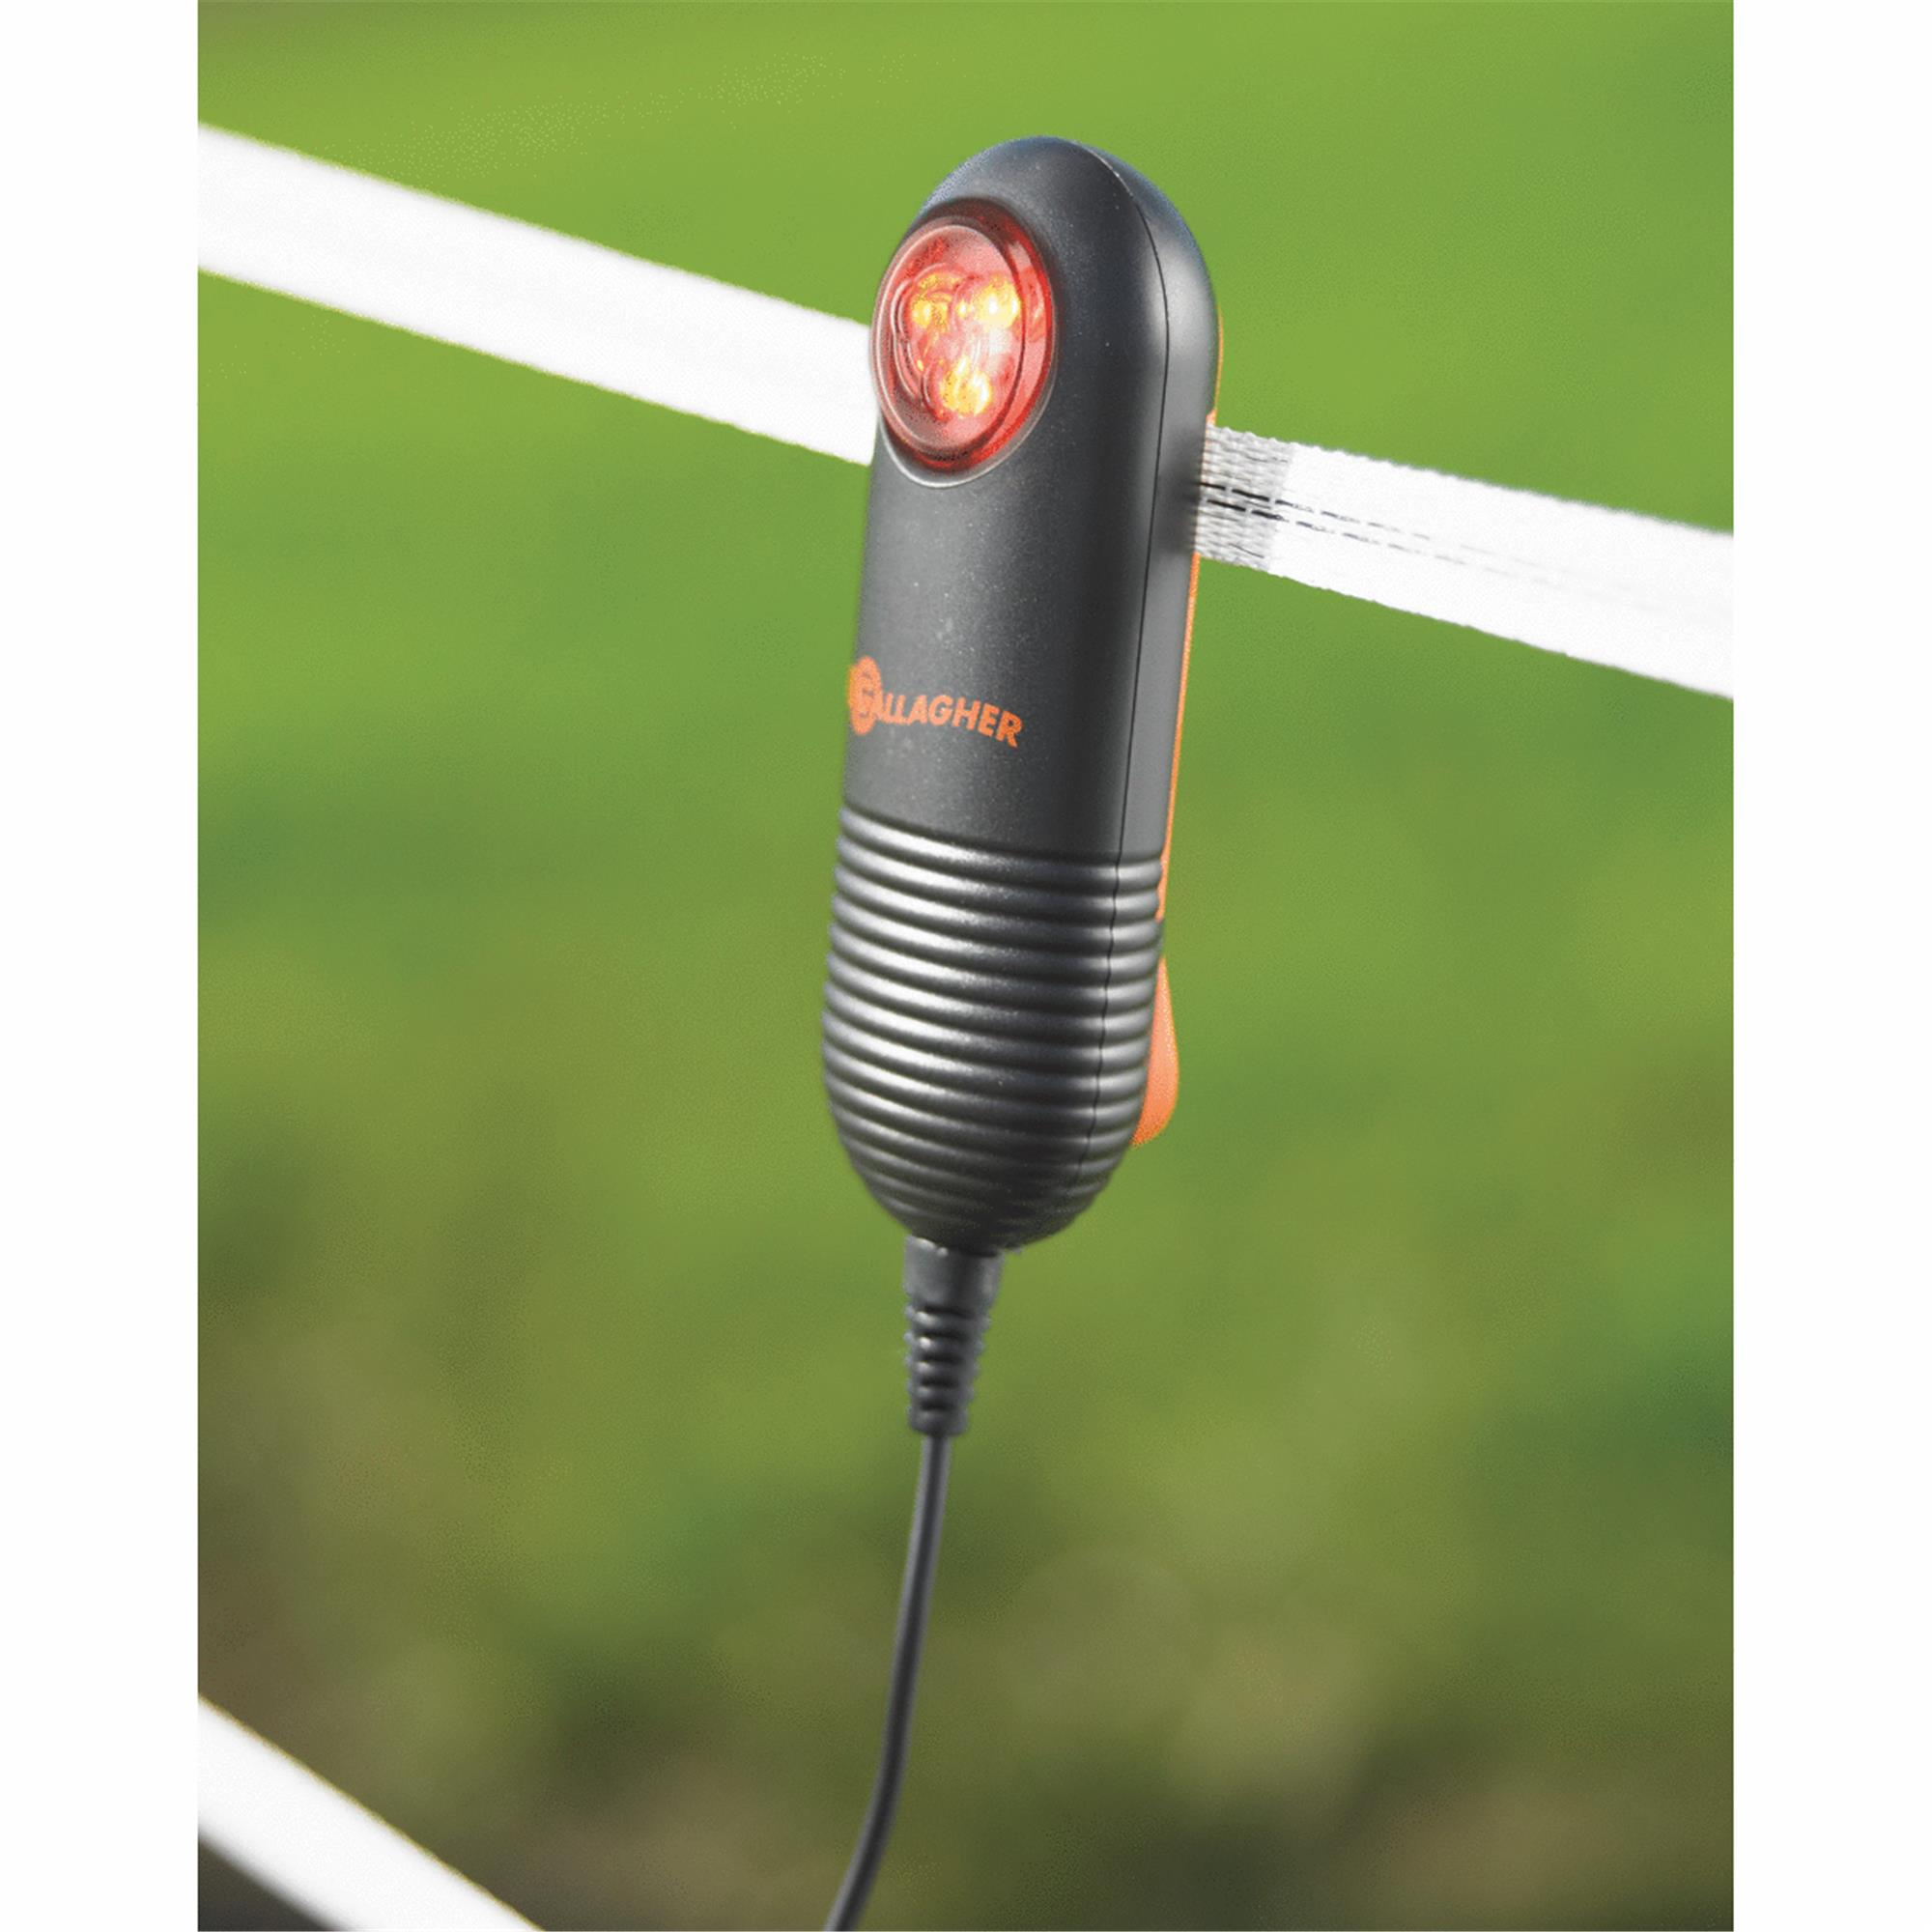 Gallagher Permanent Electric Fence Tester